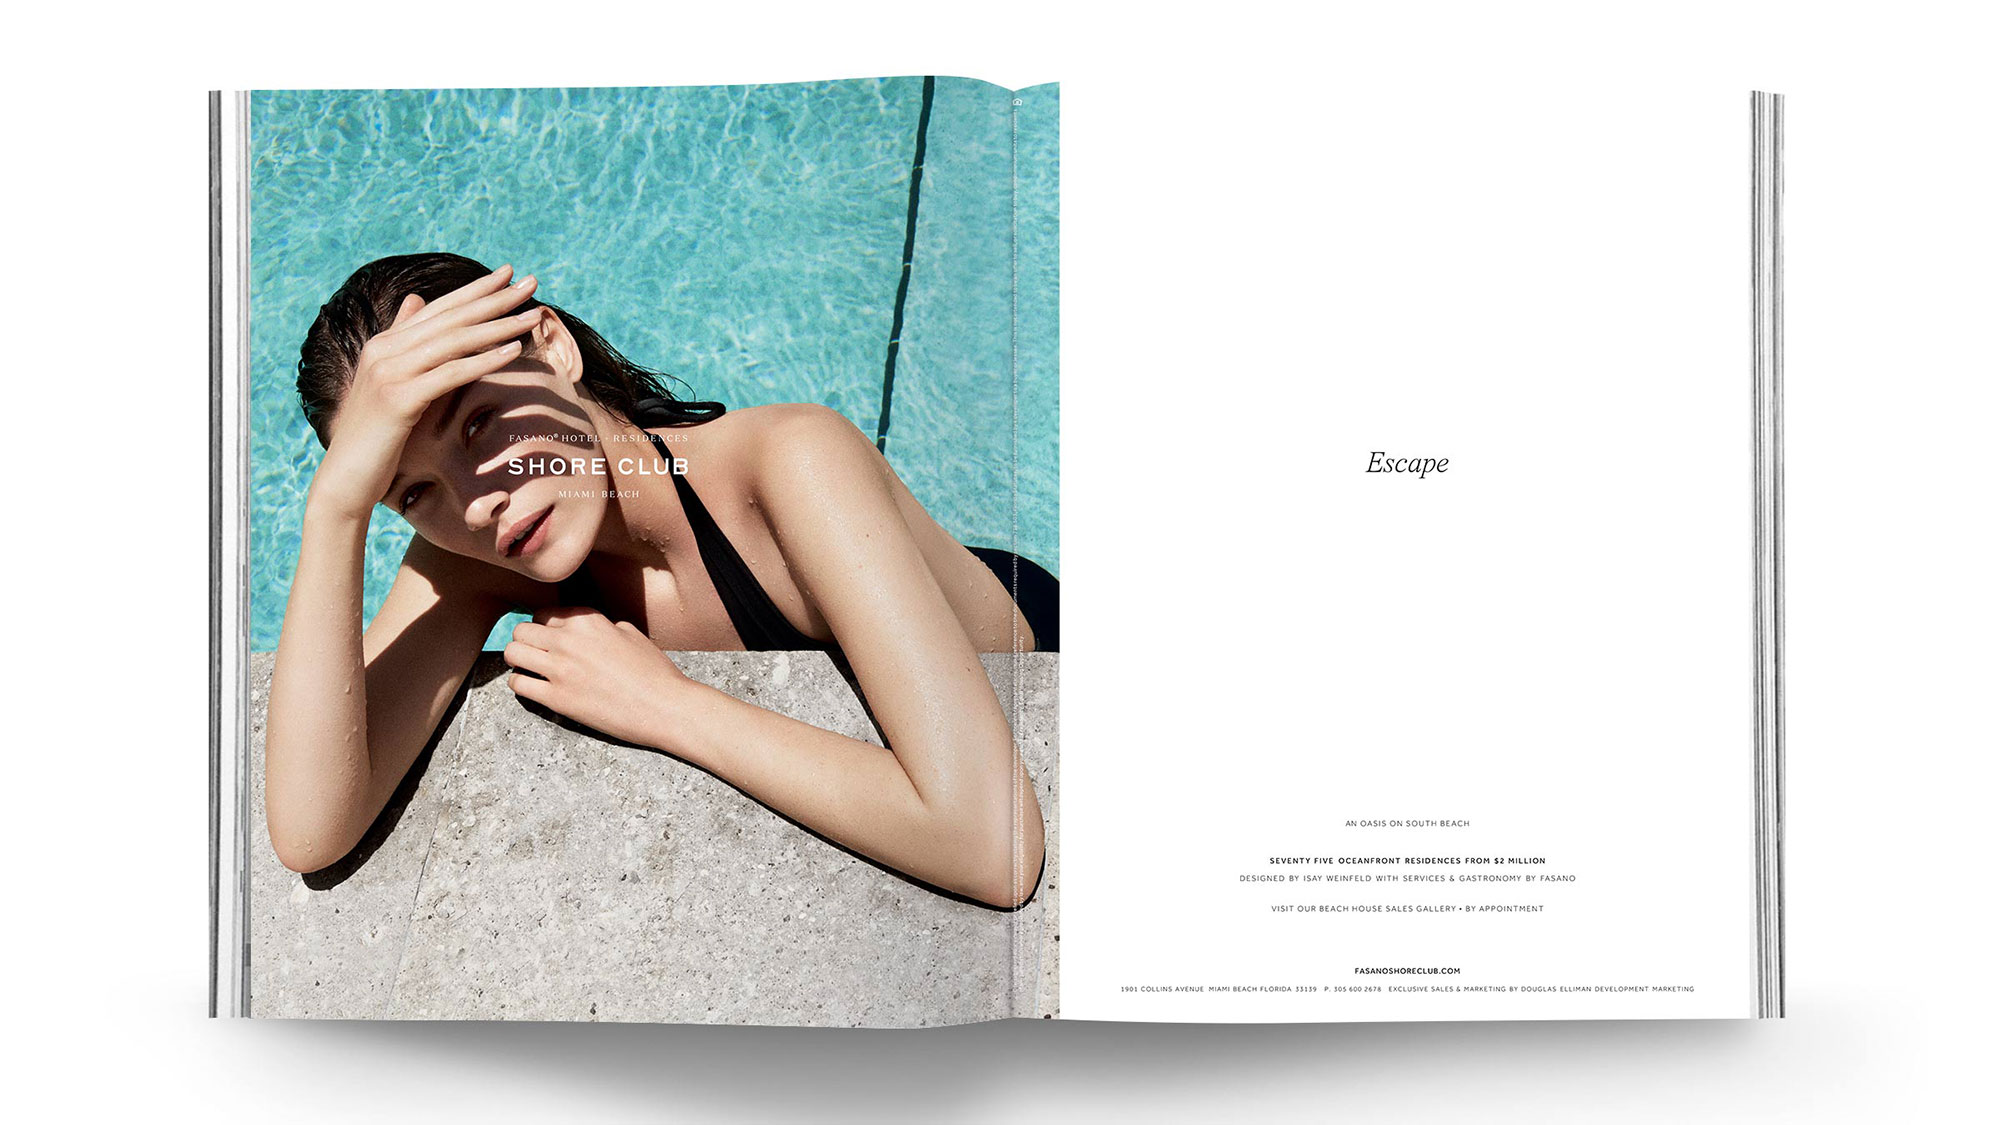 Advertising Campaign for The Shore Club